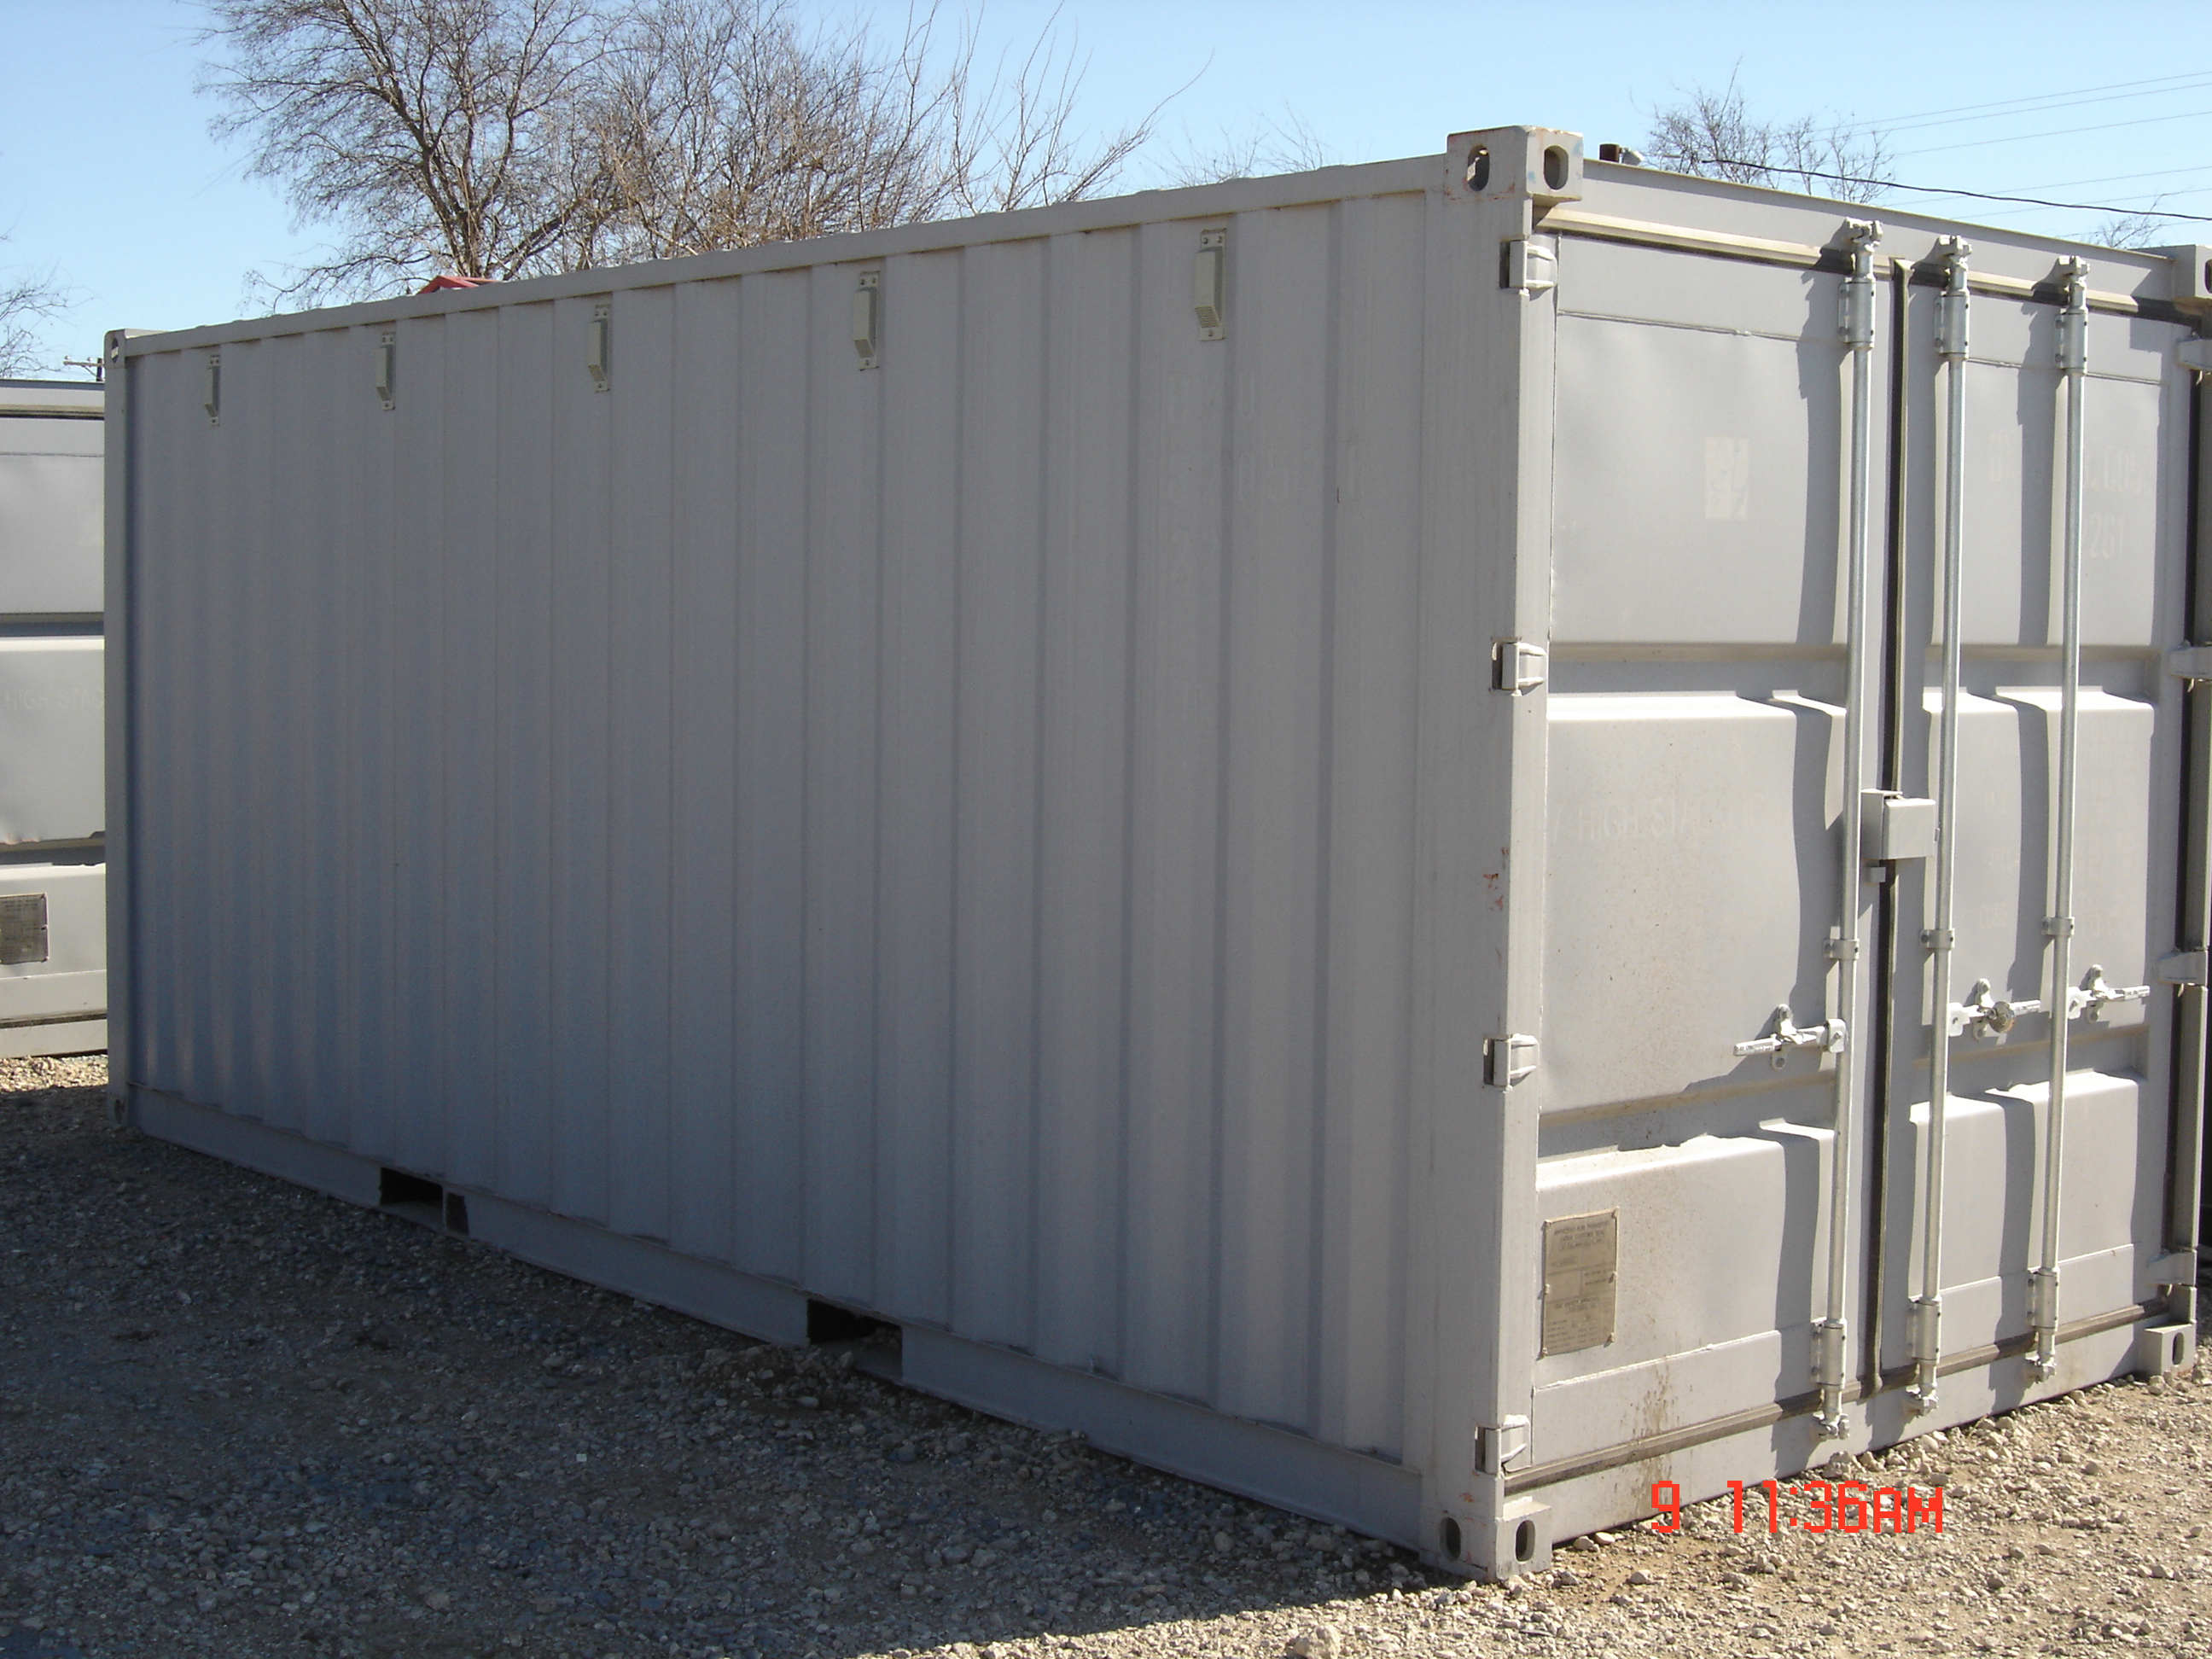 Steel Storage Shipping Containers for Sale 2592 x 1944